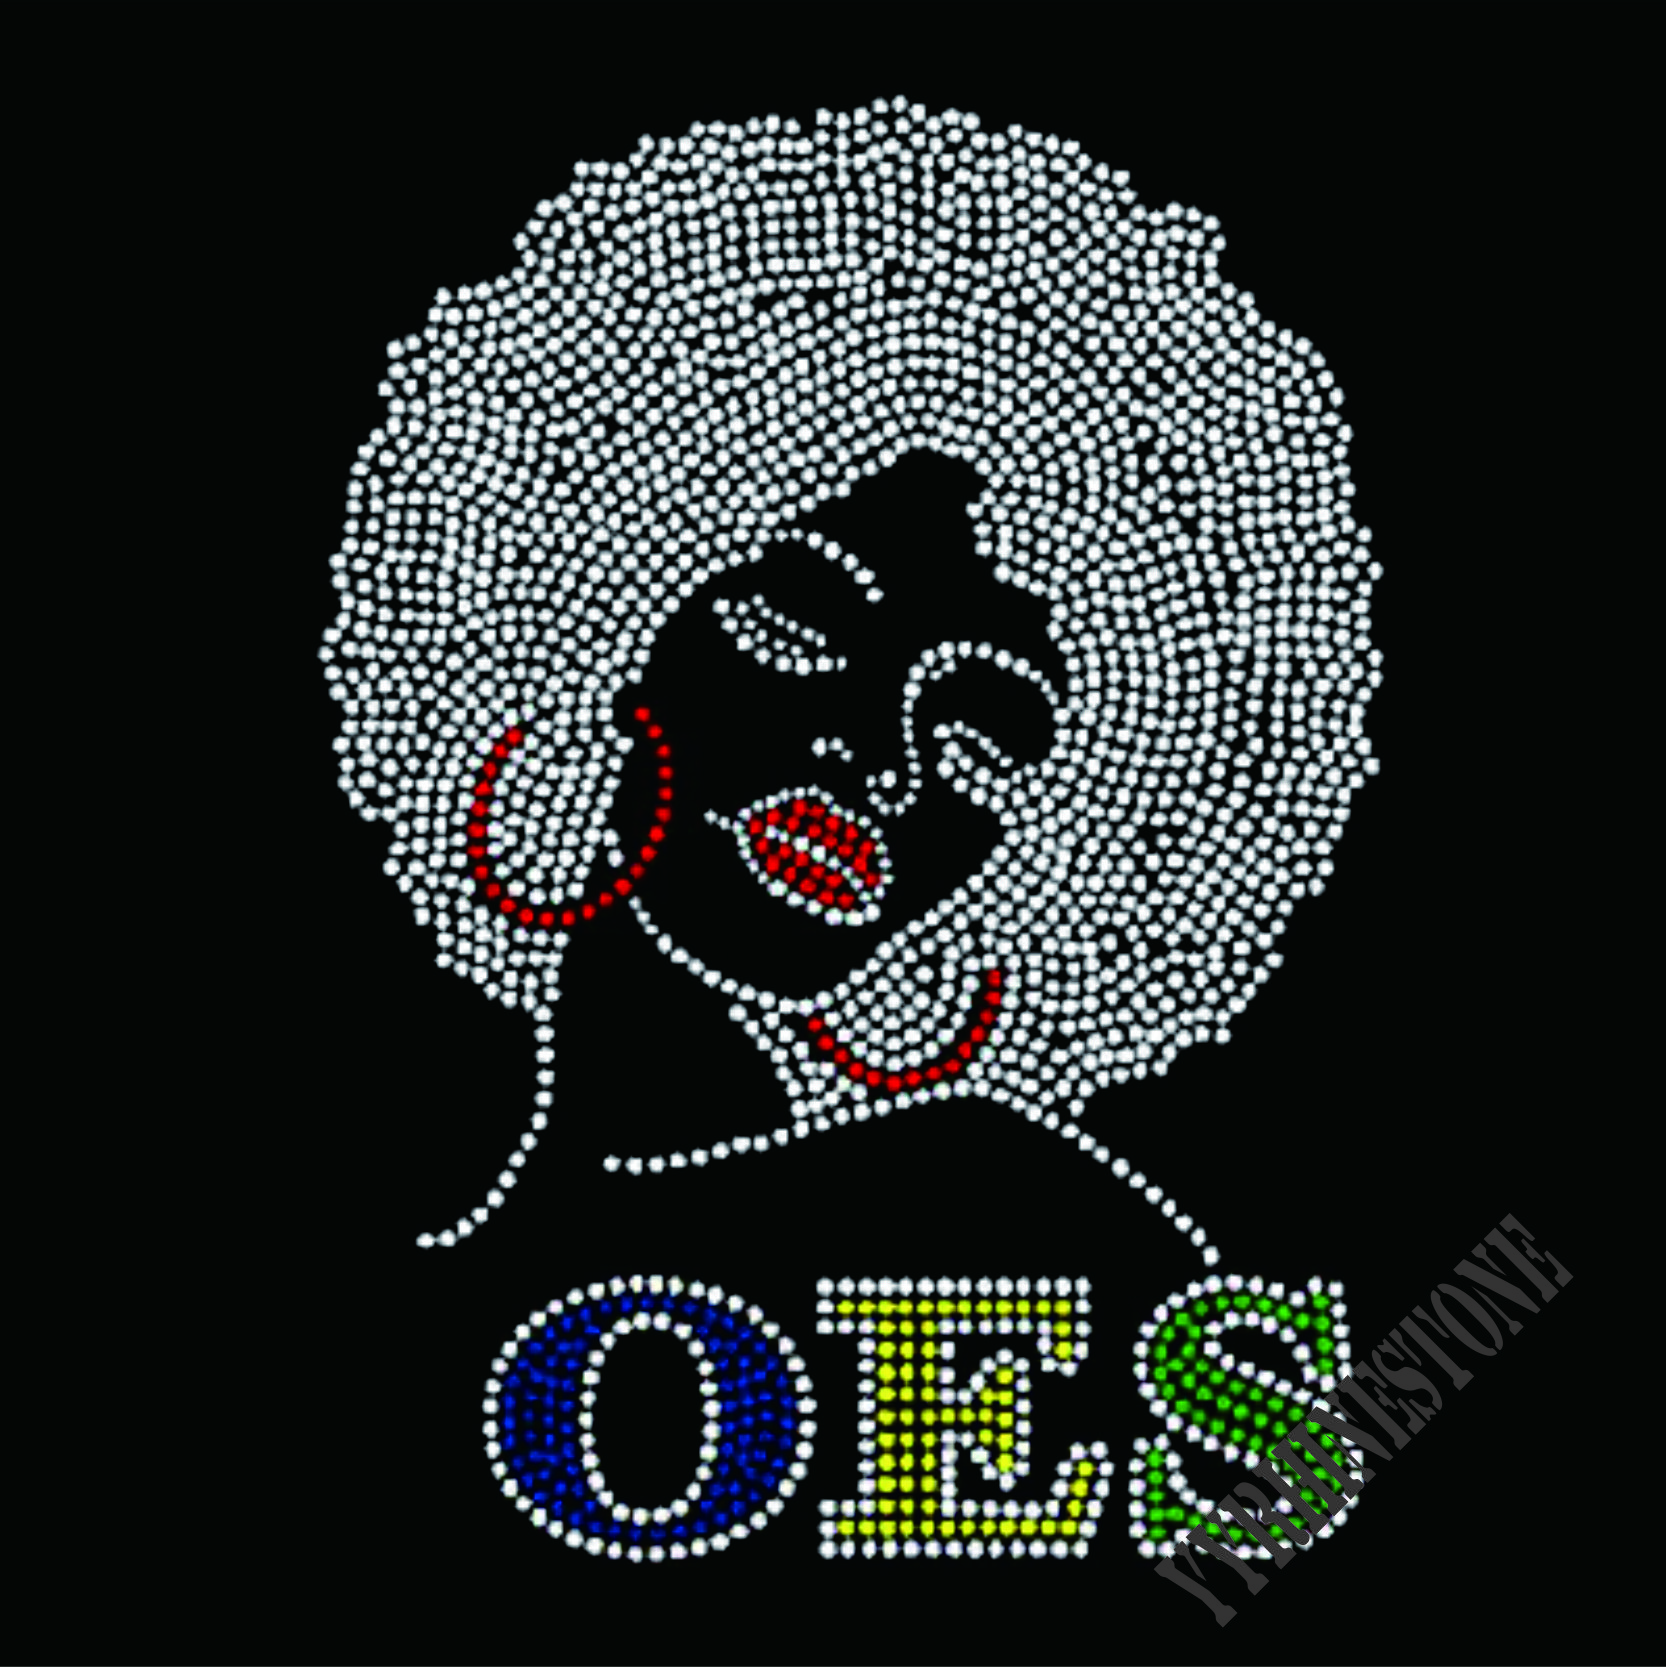 For T-shirt OES afro girl hotfix rhinestone transfers